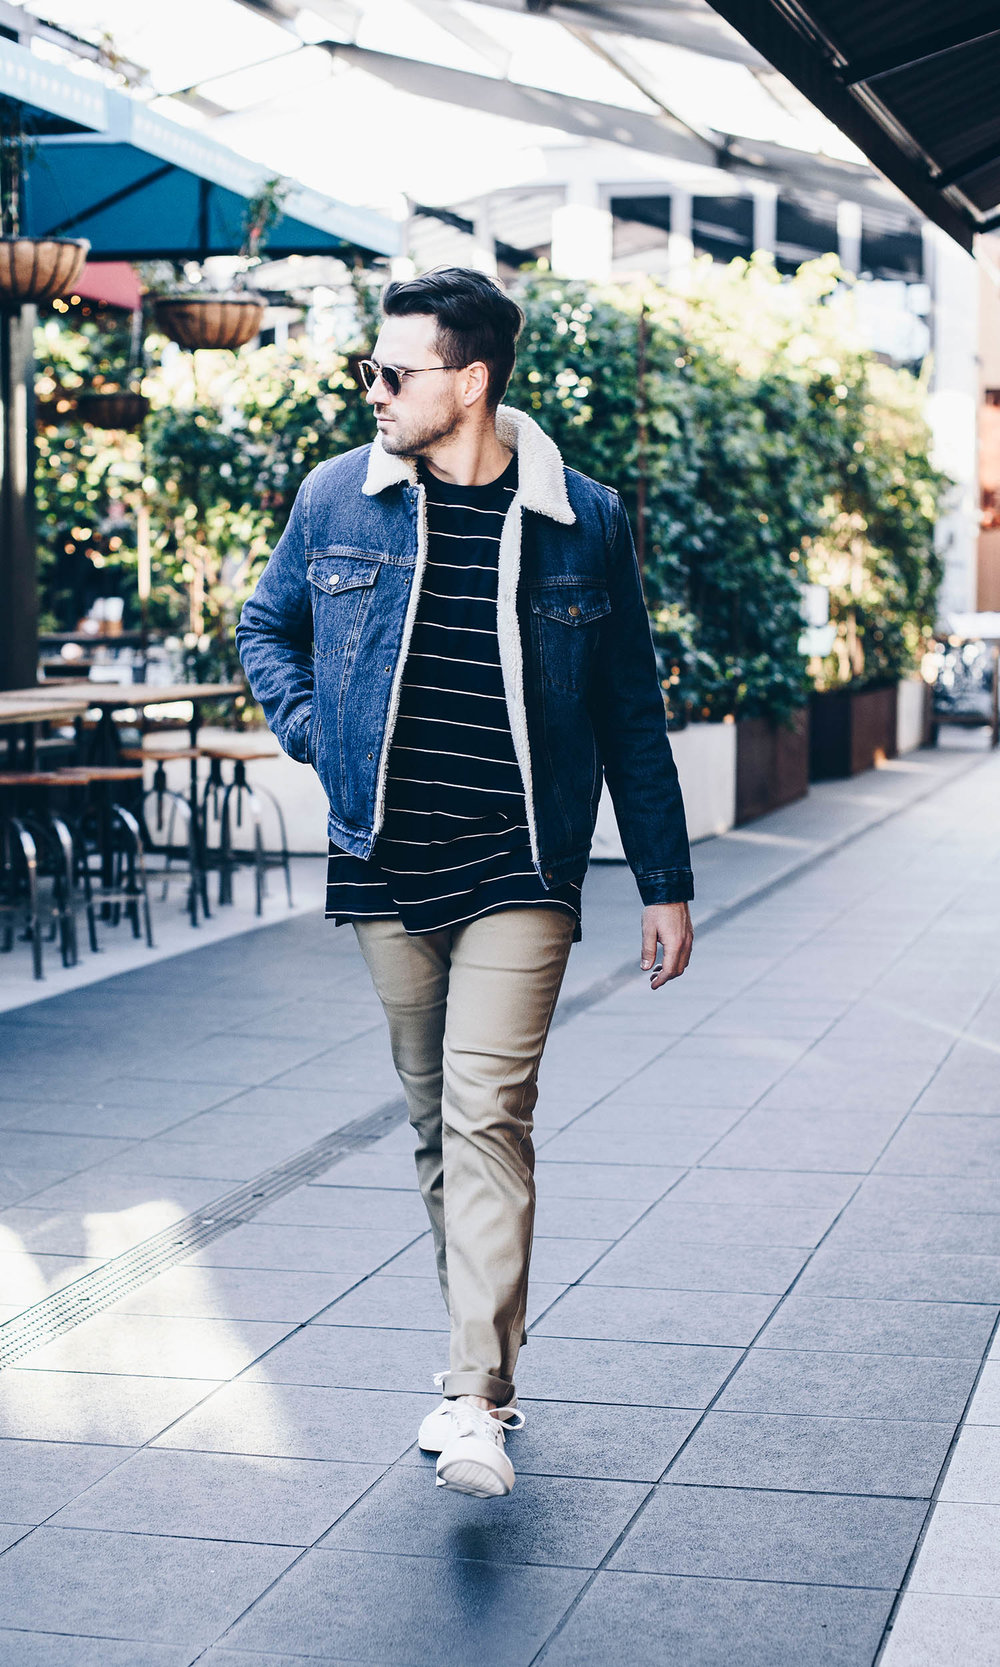 jaheb_barnett_mens_fashion_blogger_new_zealand_service_denim_store